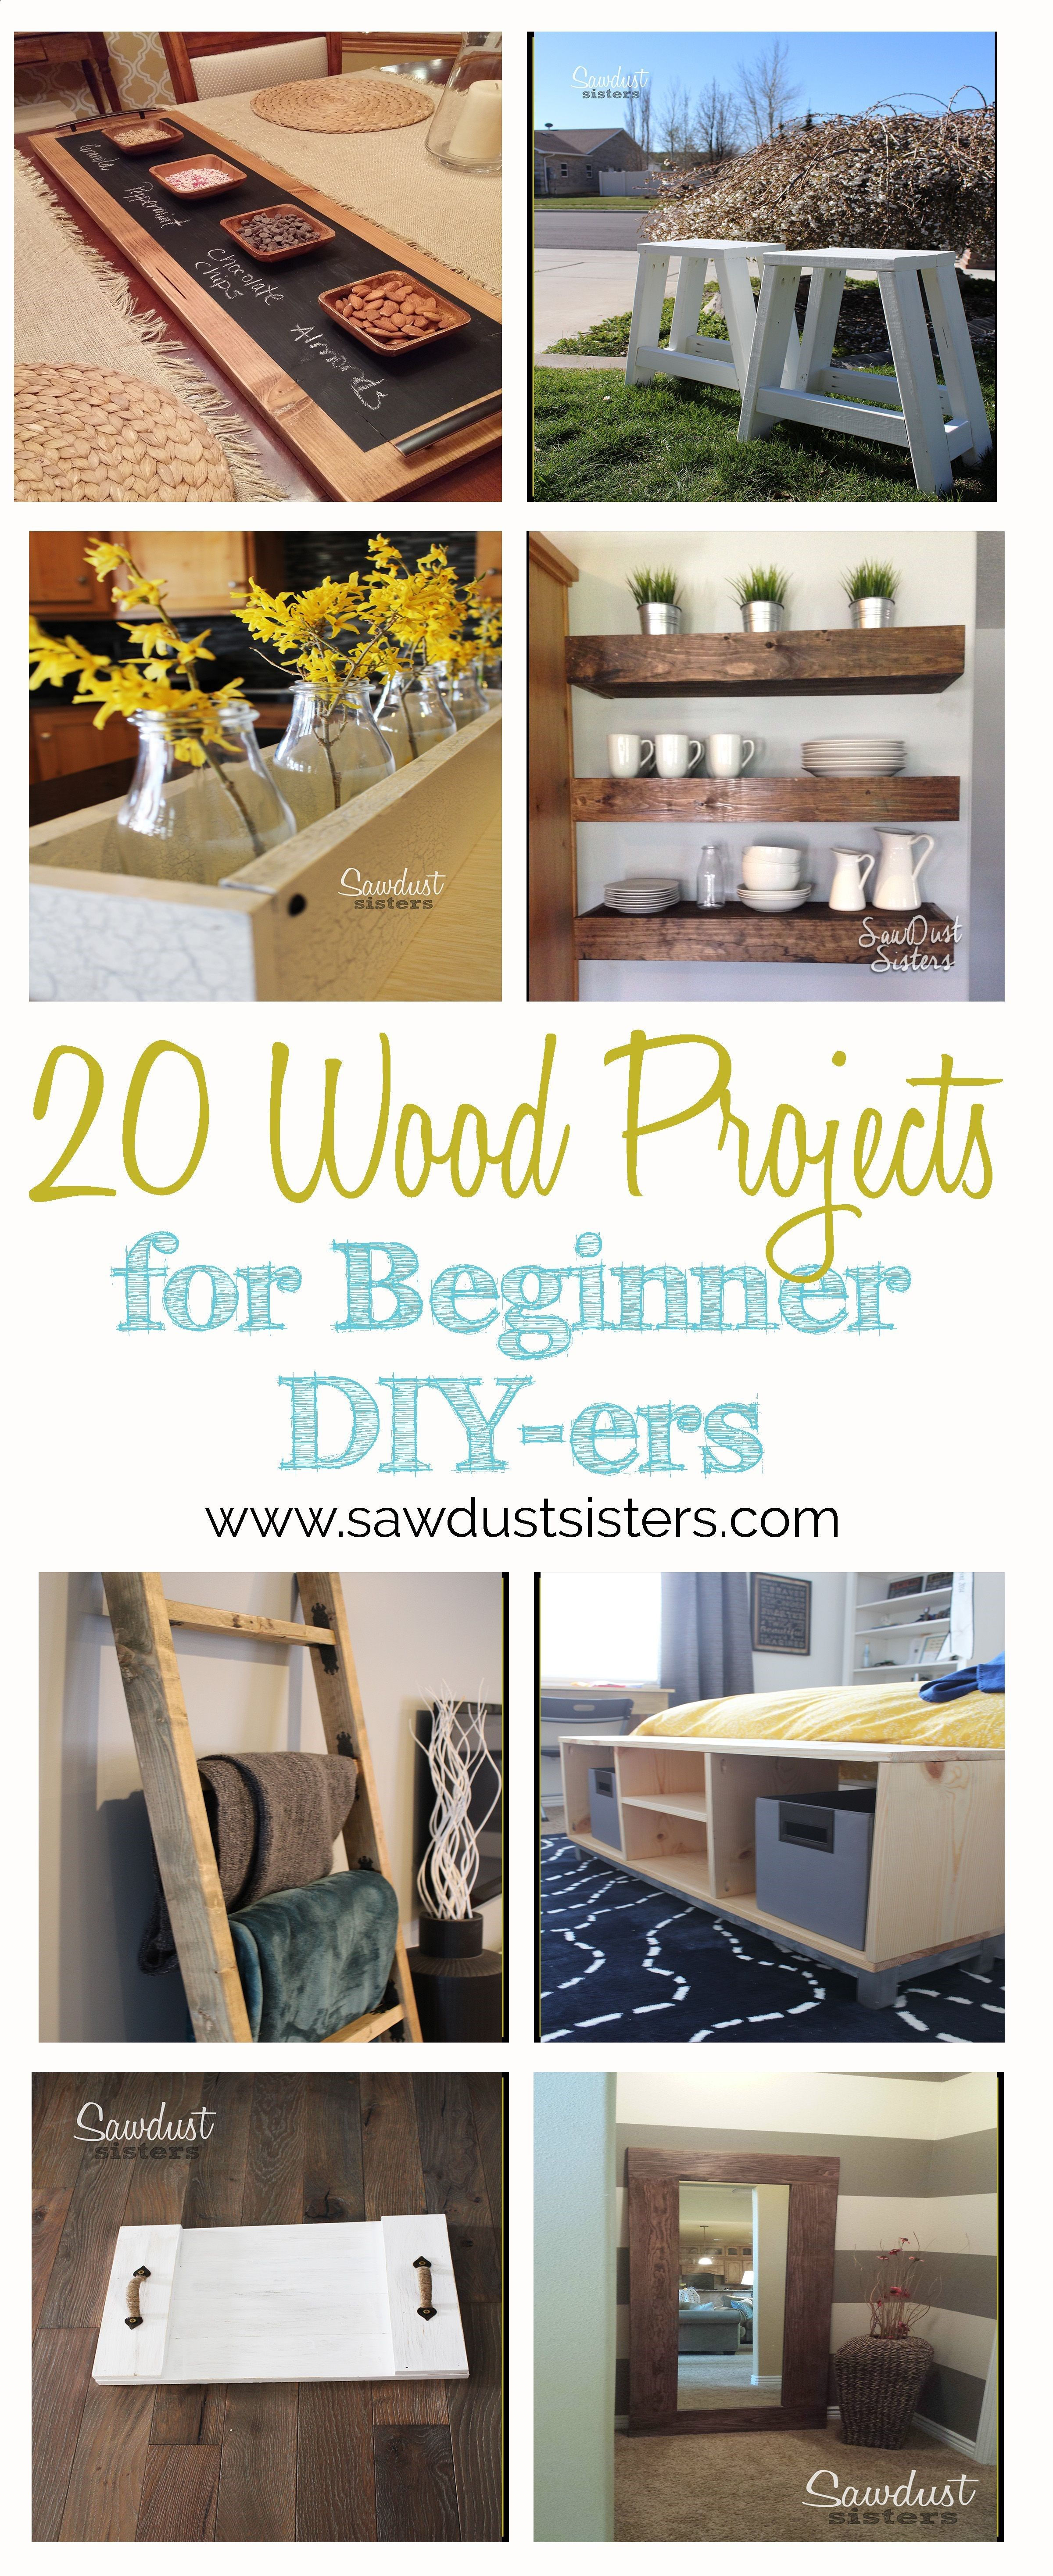 Plans Of Woodworking Diy Projects  Awesome Projects To Add